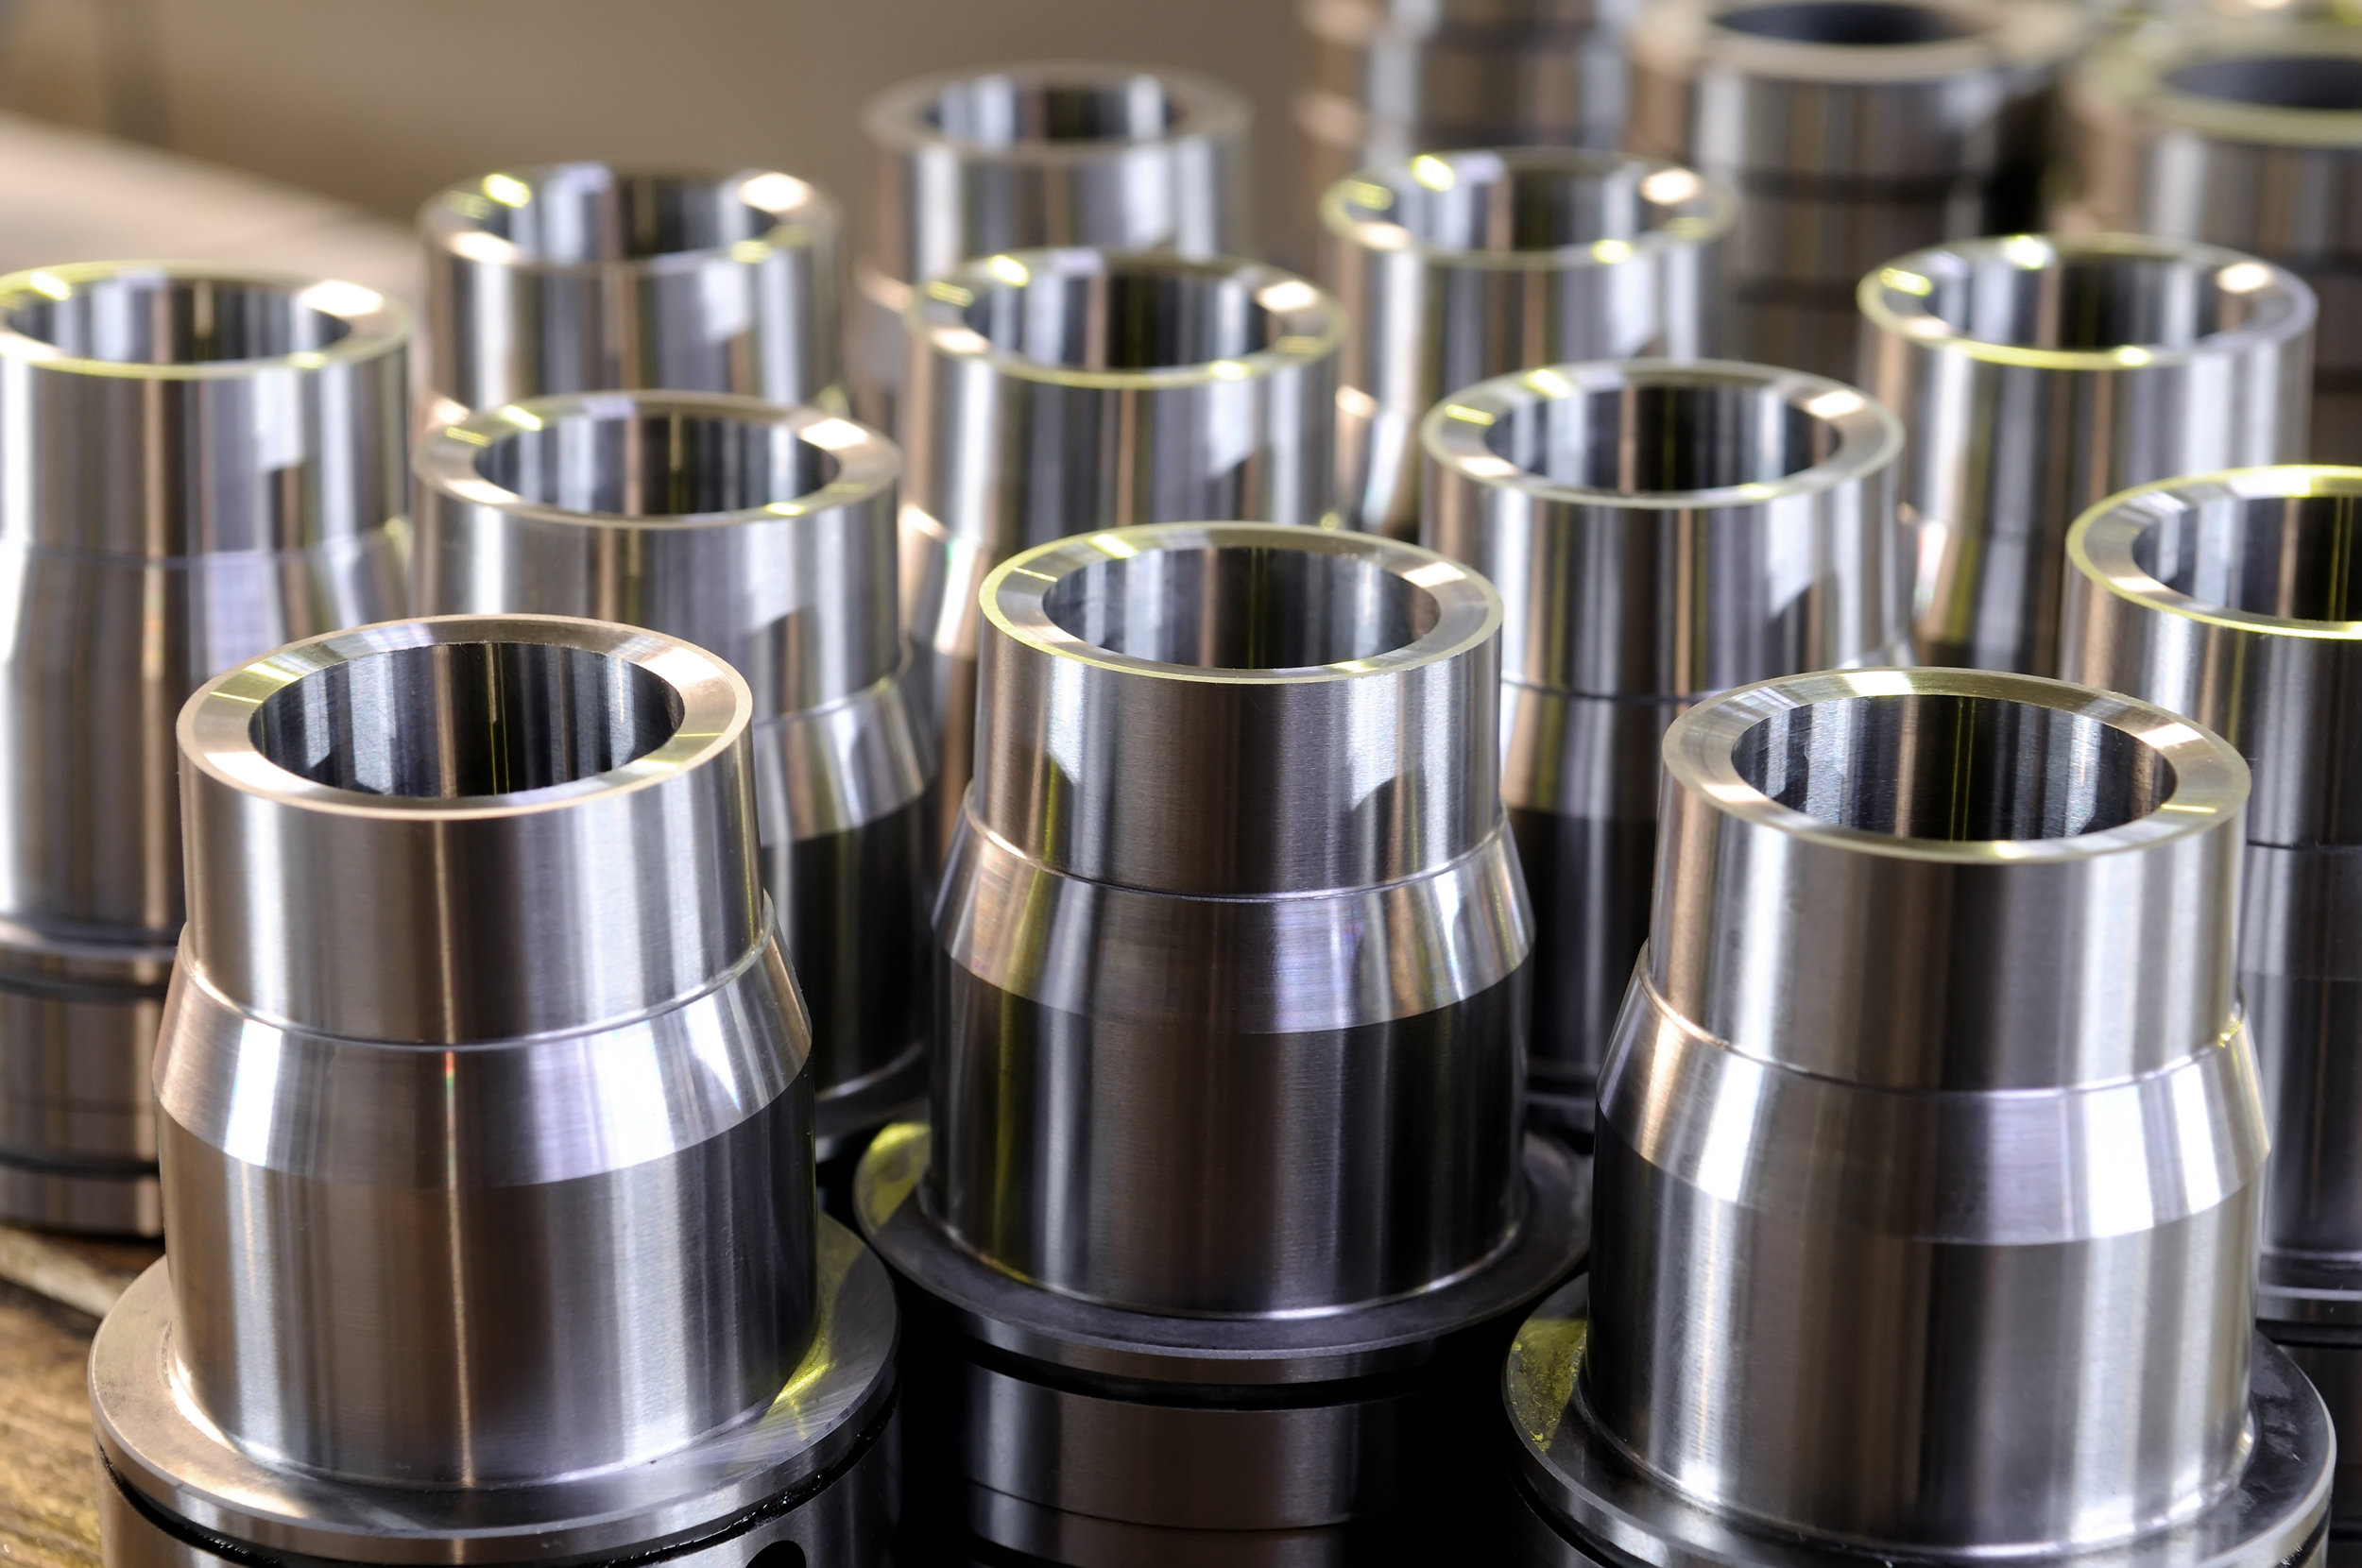 bore grinding - For The Closer Tolerance Bores, Grinding Will Give The Finish & Accuracy Needed. - Capacity To Grind Up To 75mm Bores Depending On The Length of The Component.